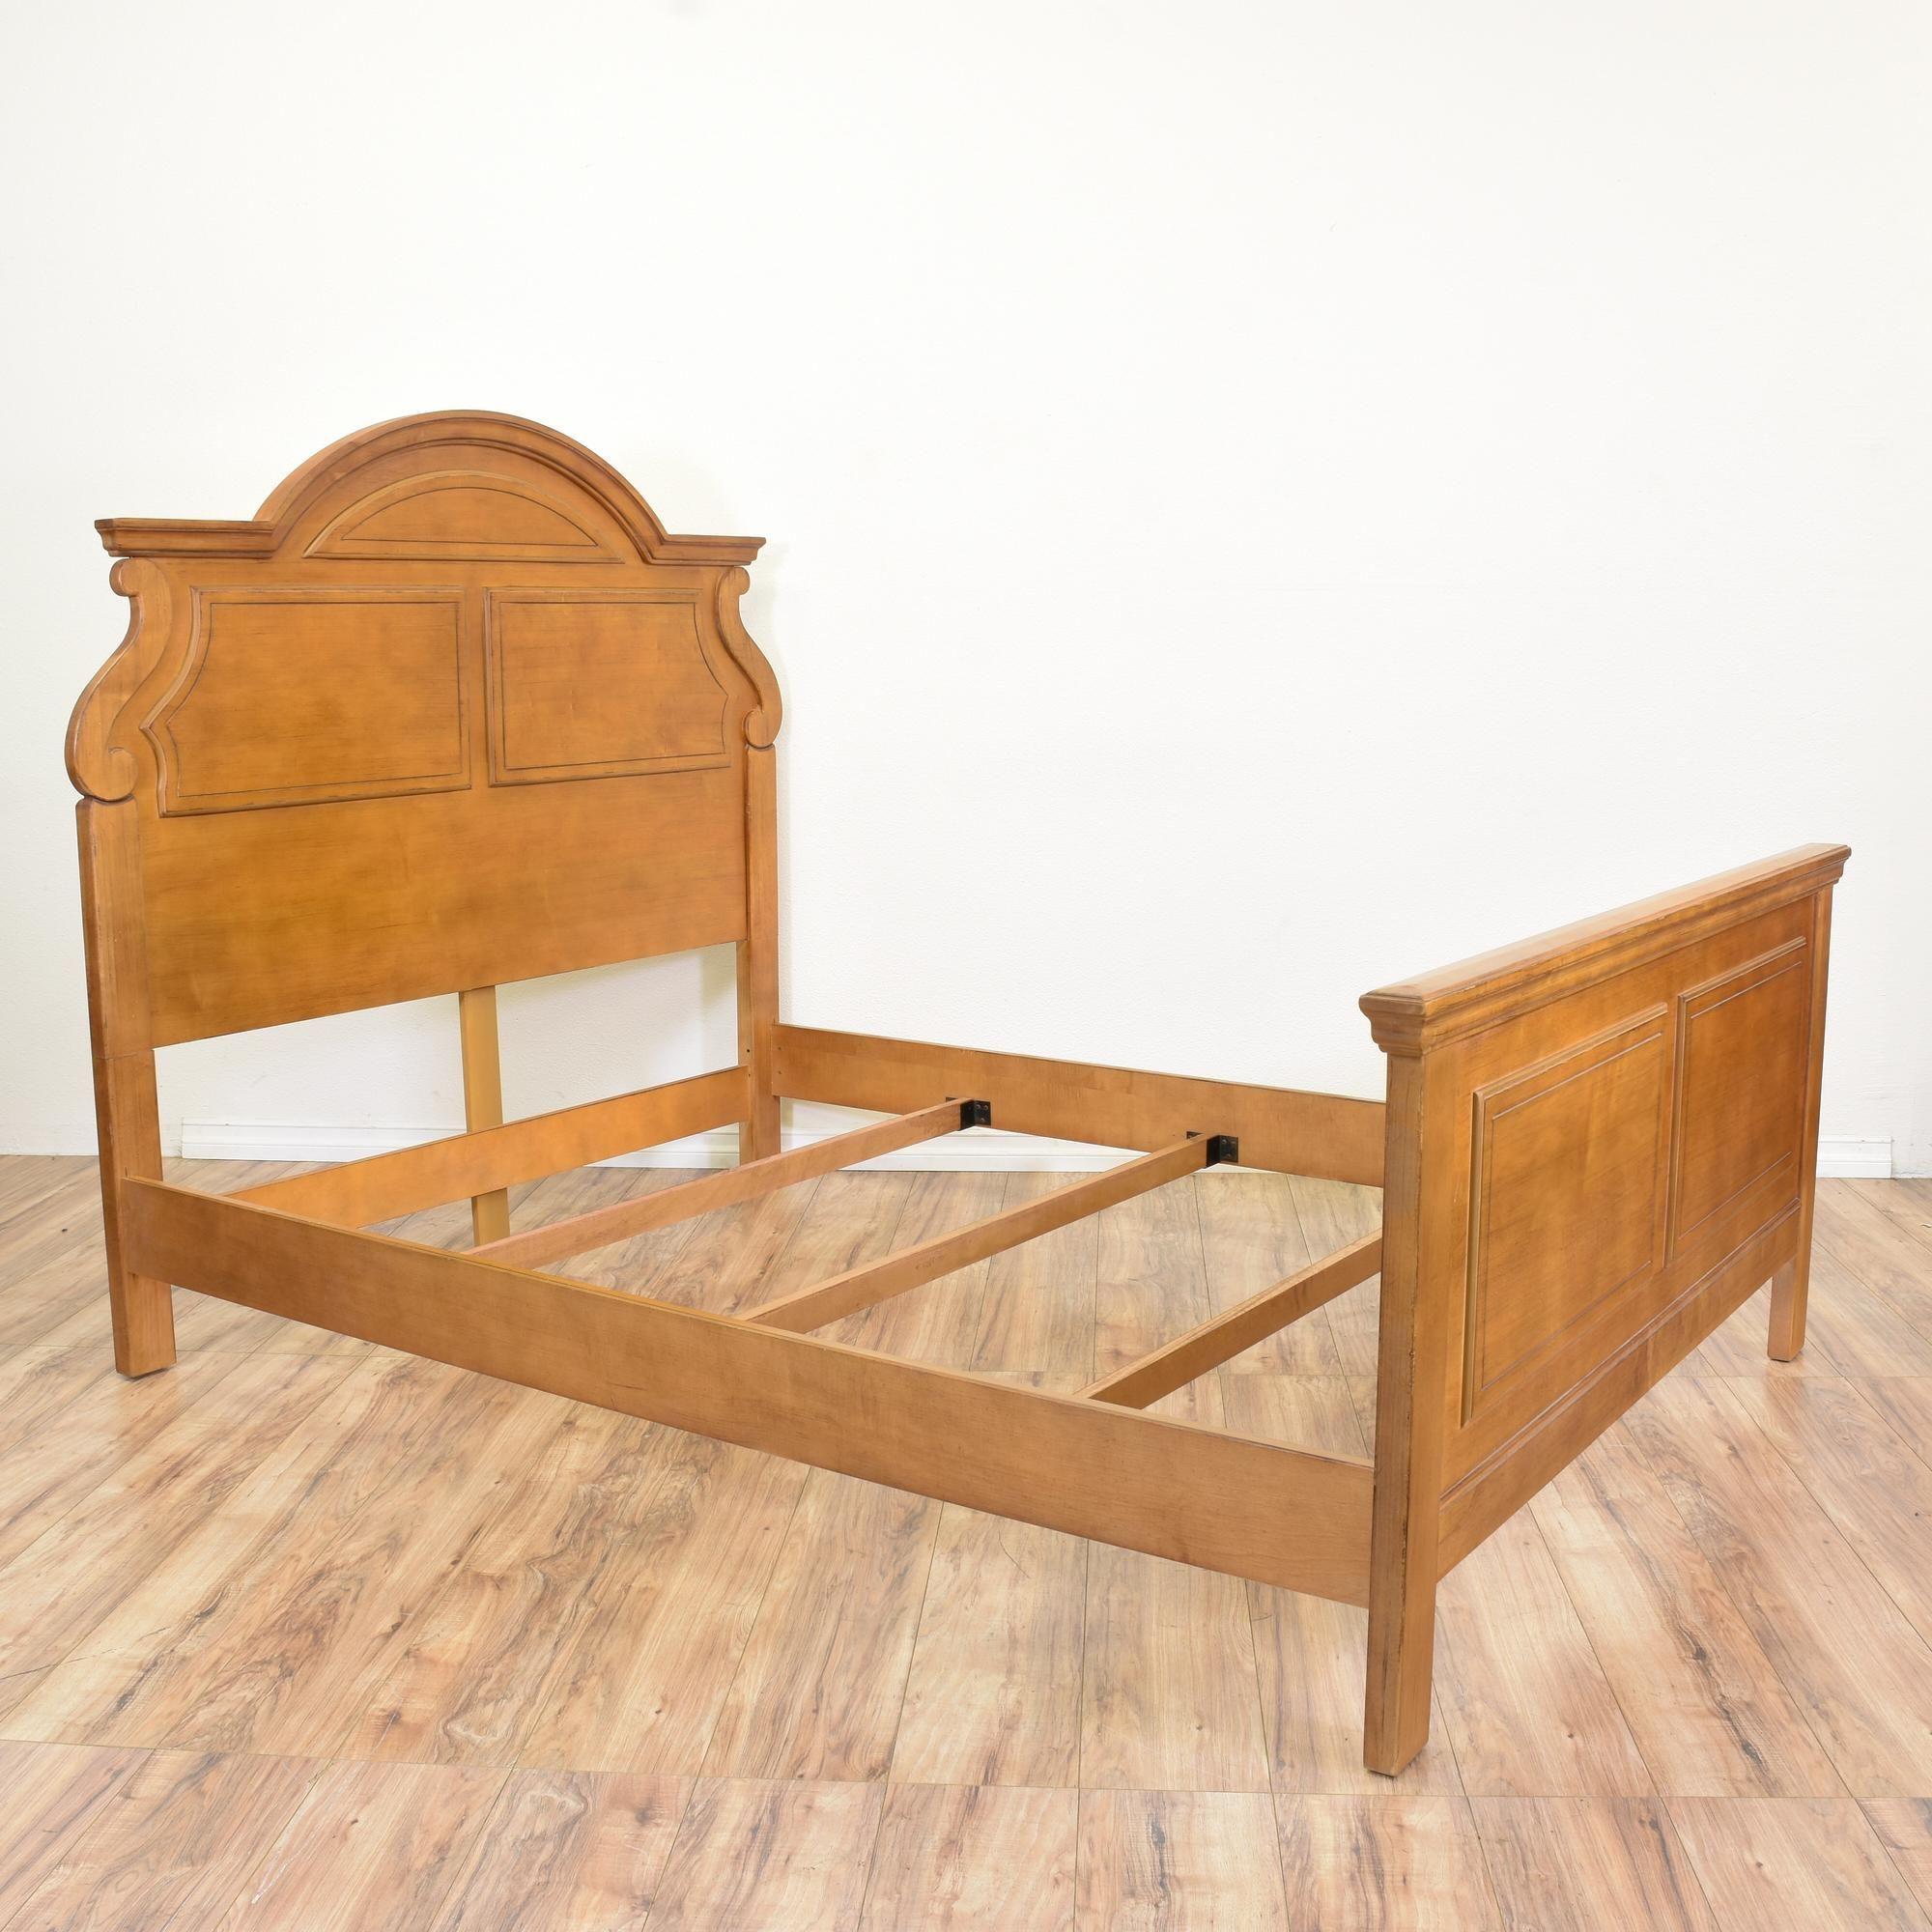 This queen sized bed frame is featured in a solid wood with a glossy ...